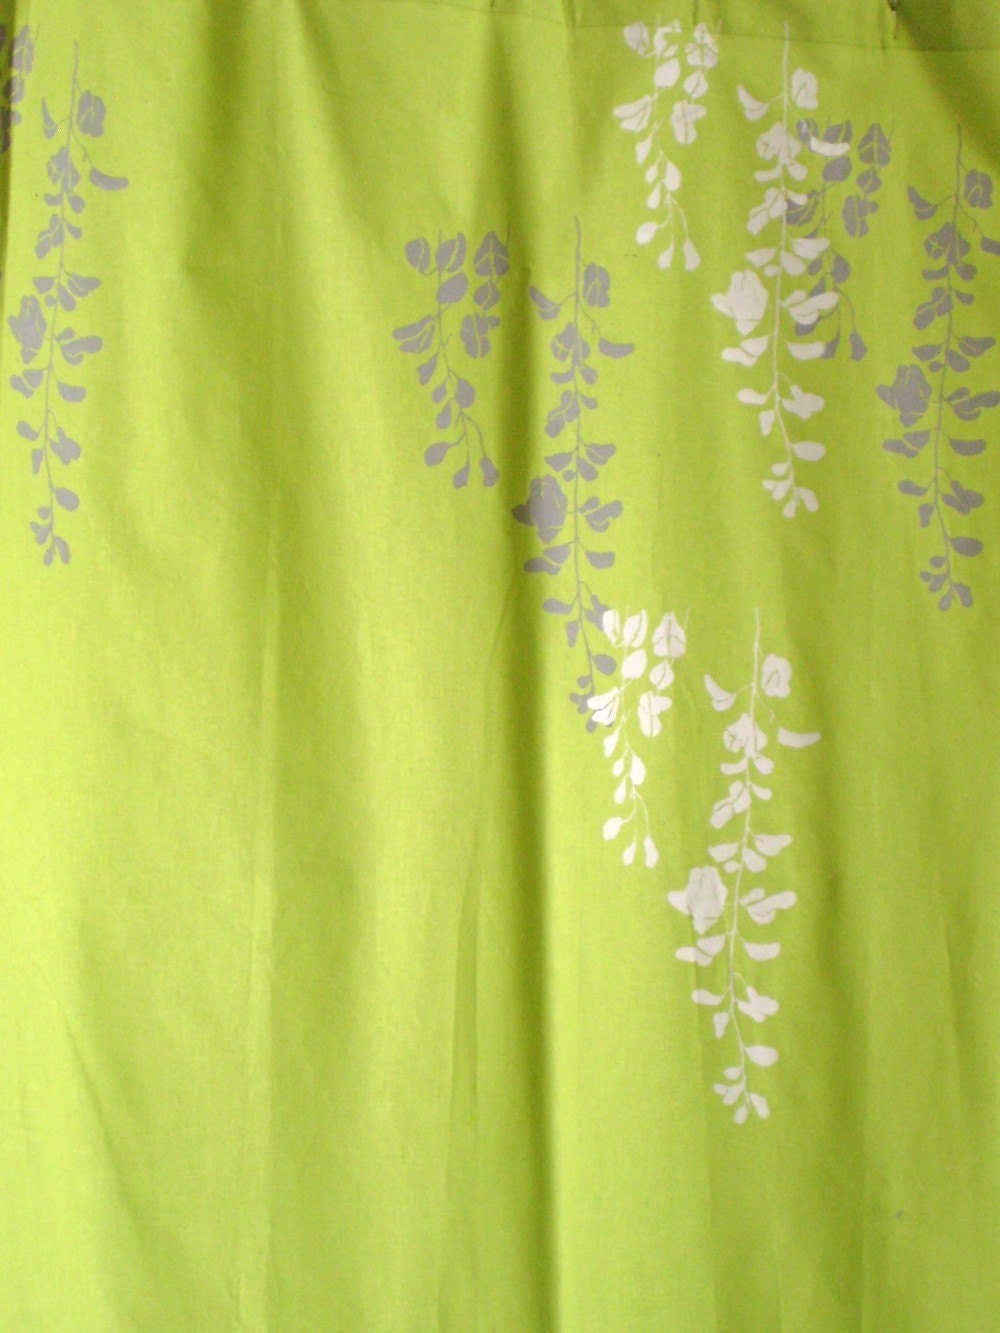 lime green curtain with wisteria print by appetitehome on etsy